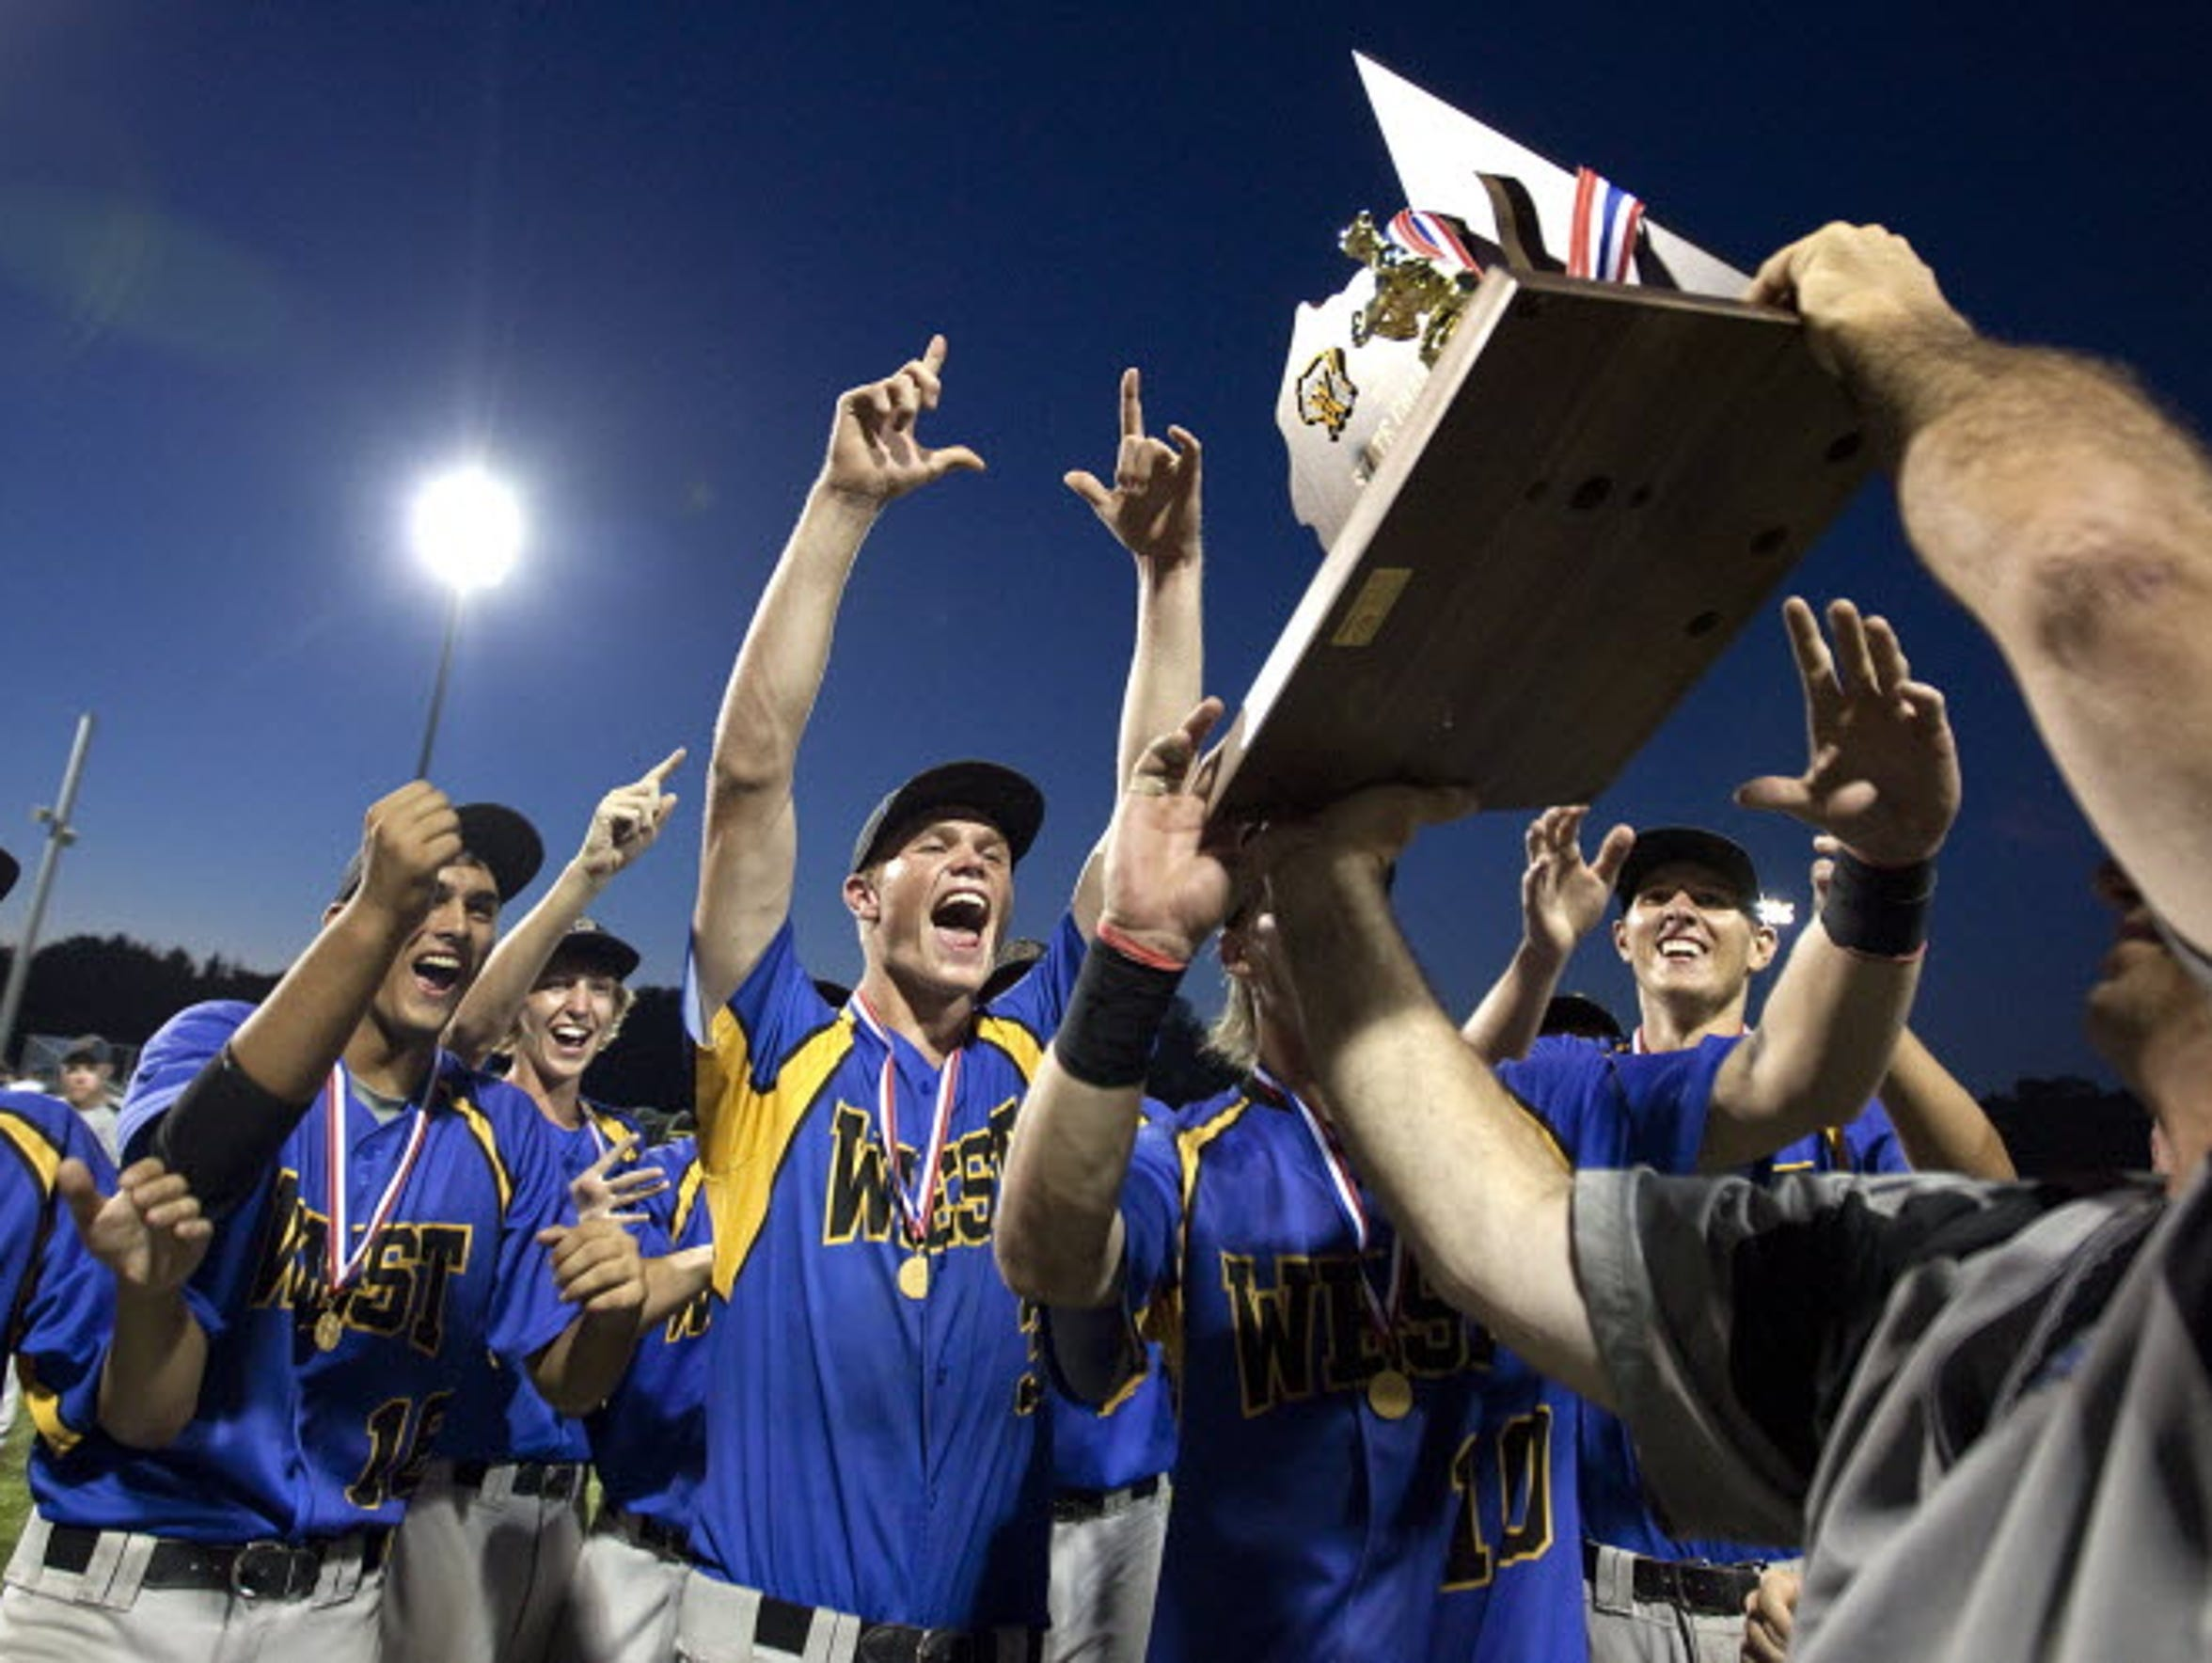 New Berlin West players hoist the first baseball state